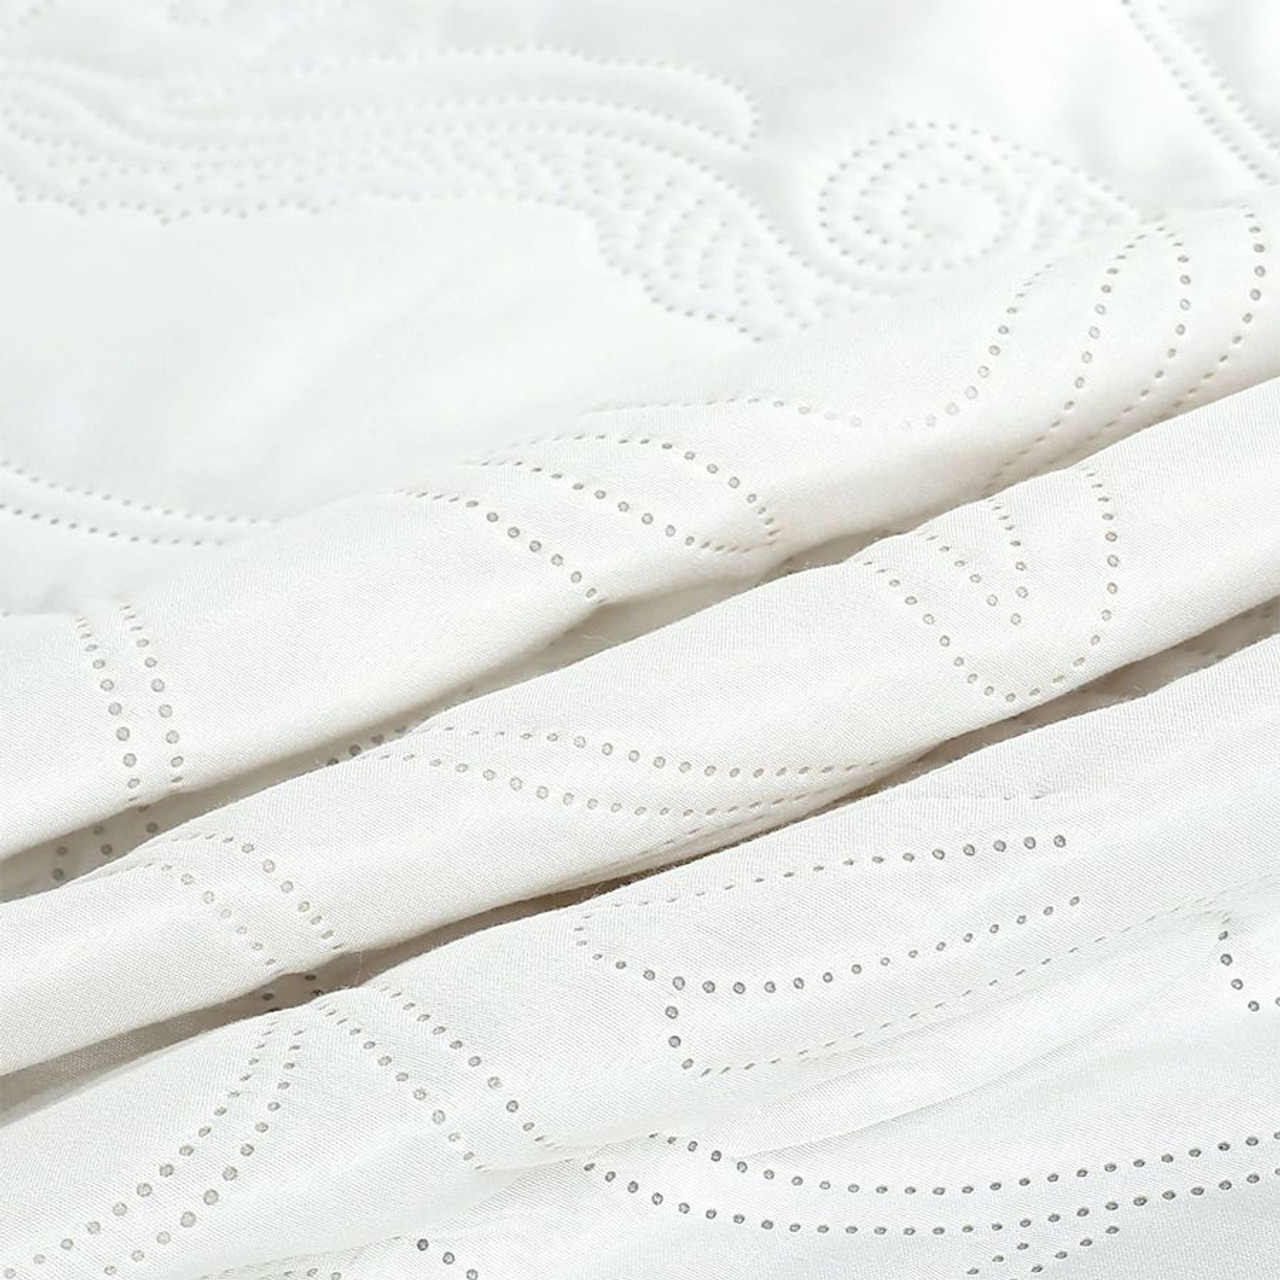 3 PC Shell & Seahorse Stitched Pinsonic Reversible Oversized Bedspread White Color